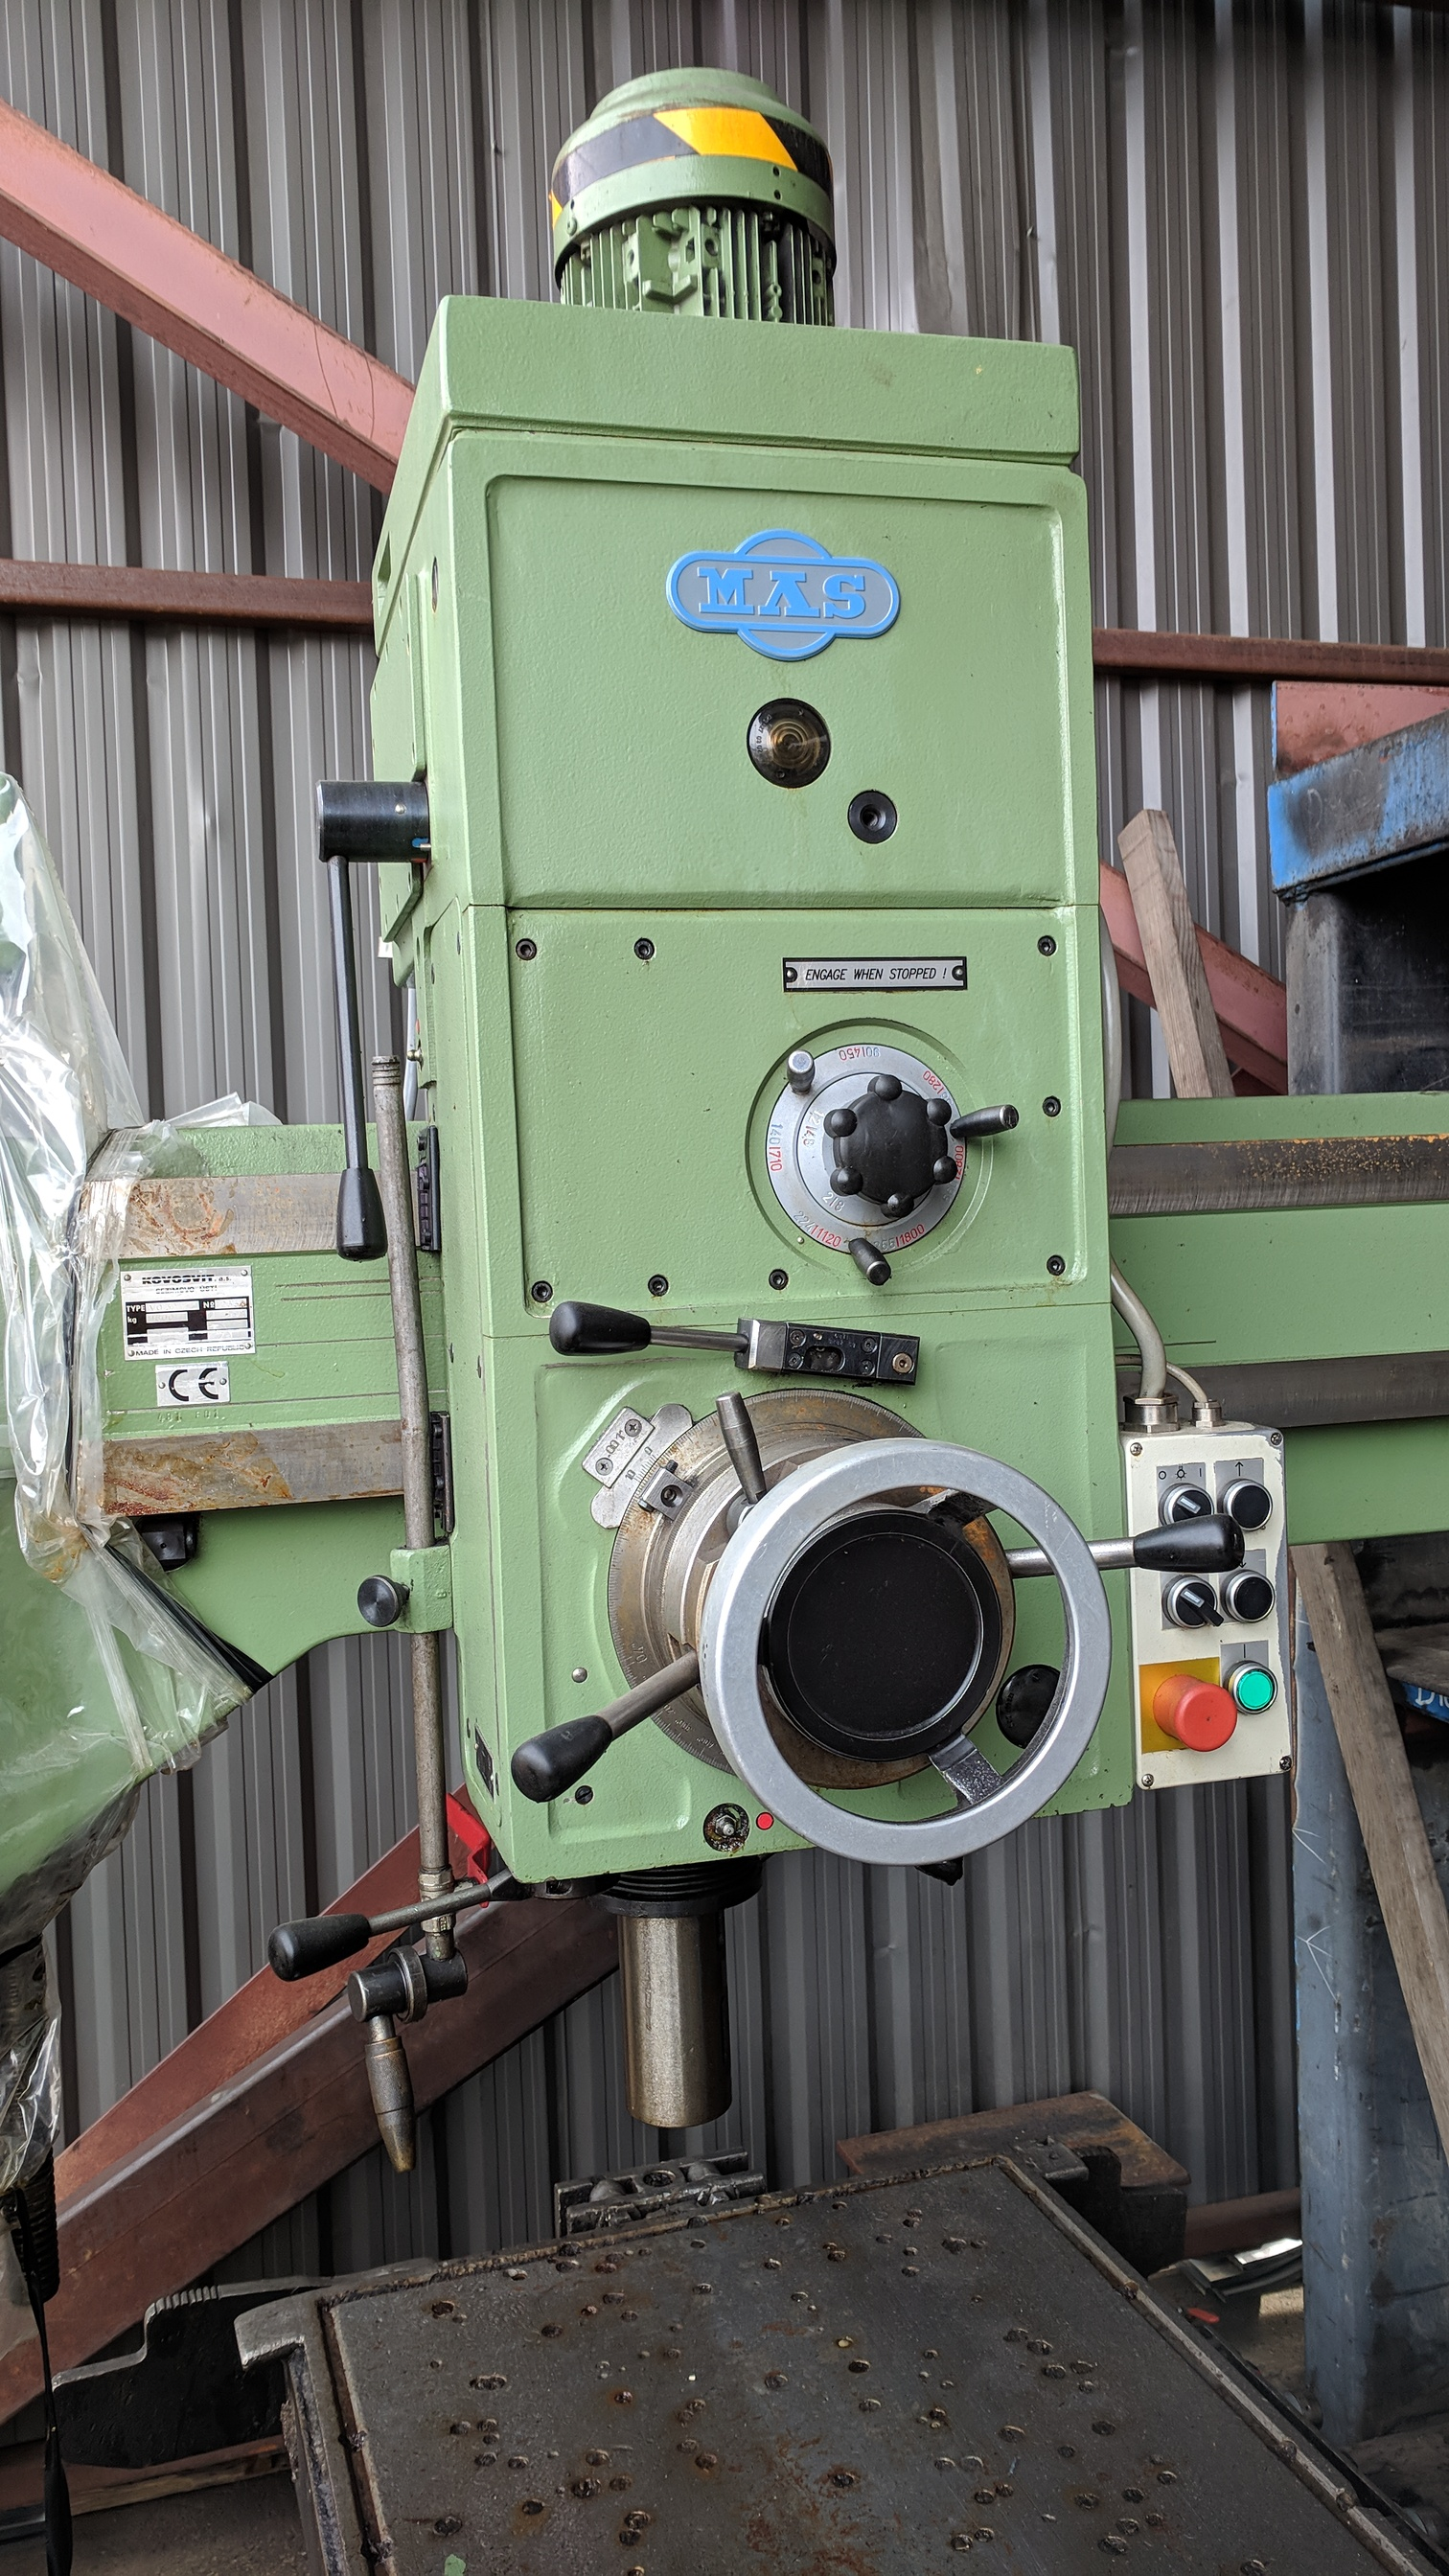 """MAS (1998) VO32 40"""" RADIAL ARM DRILL WITH 10"""" COLUMN, SPEEDS TO 2890 RPM, 3 HP, S/N 2663 (CI) - Image 4 of 7"""